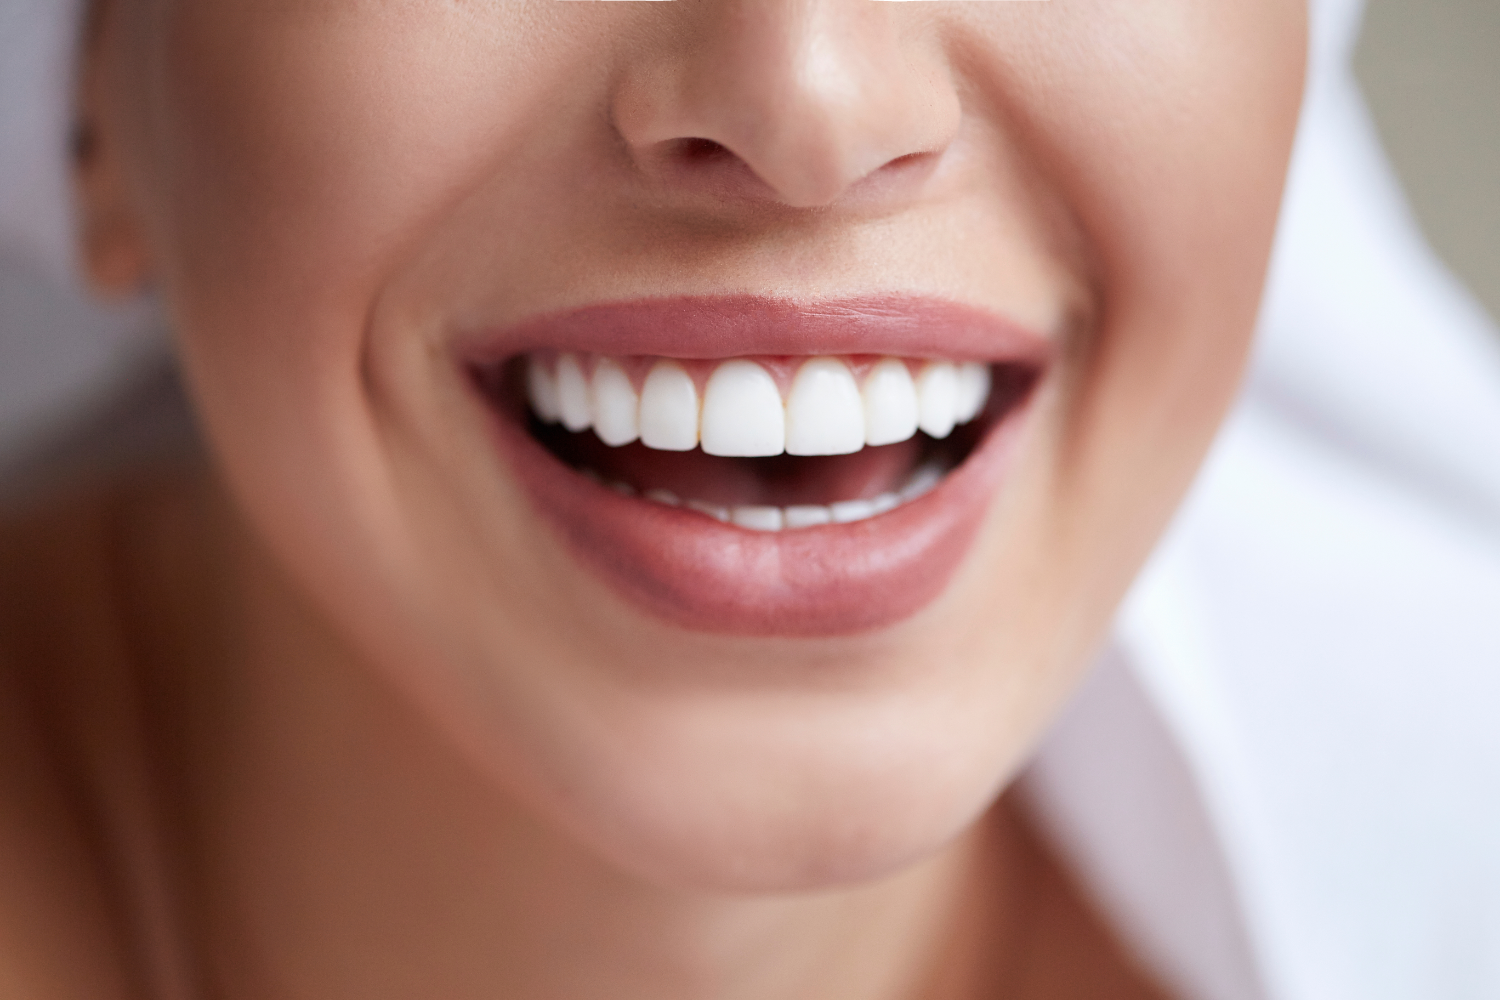 What Does a Healthy Mouth Look Like?